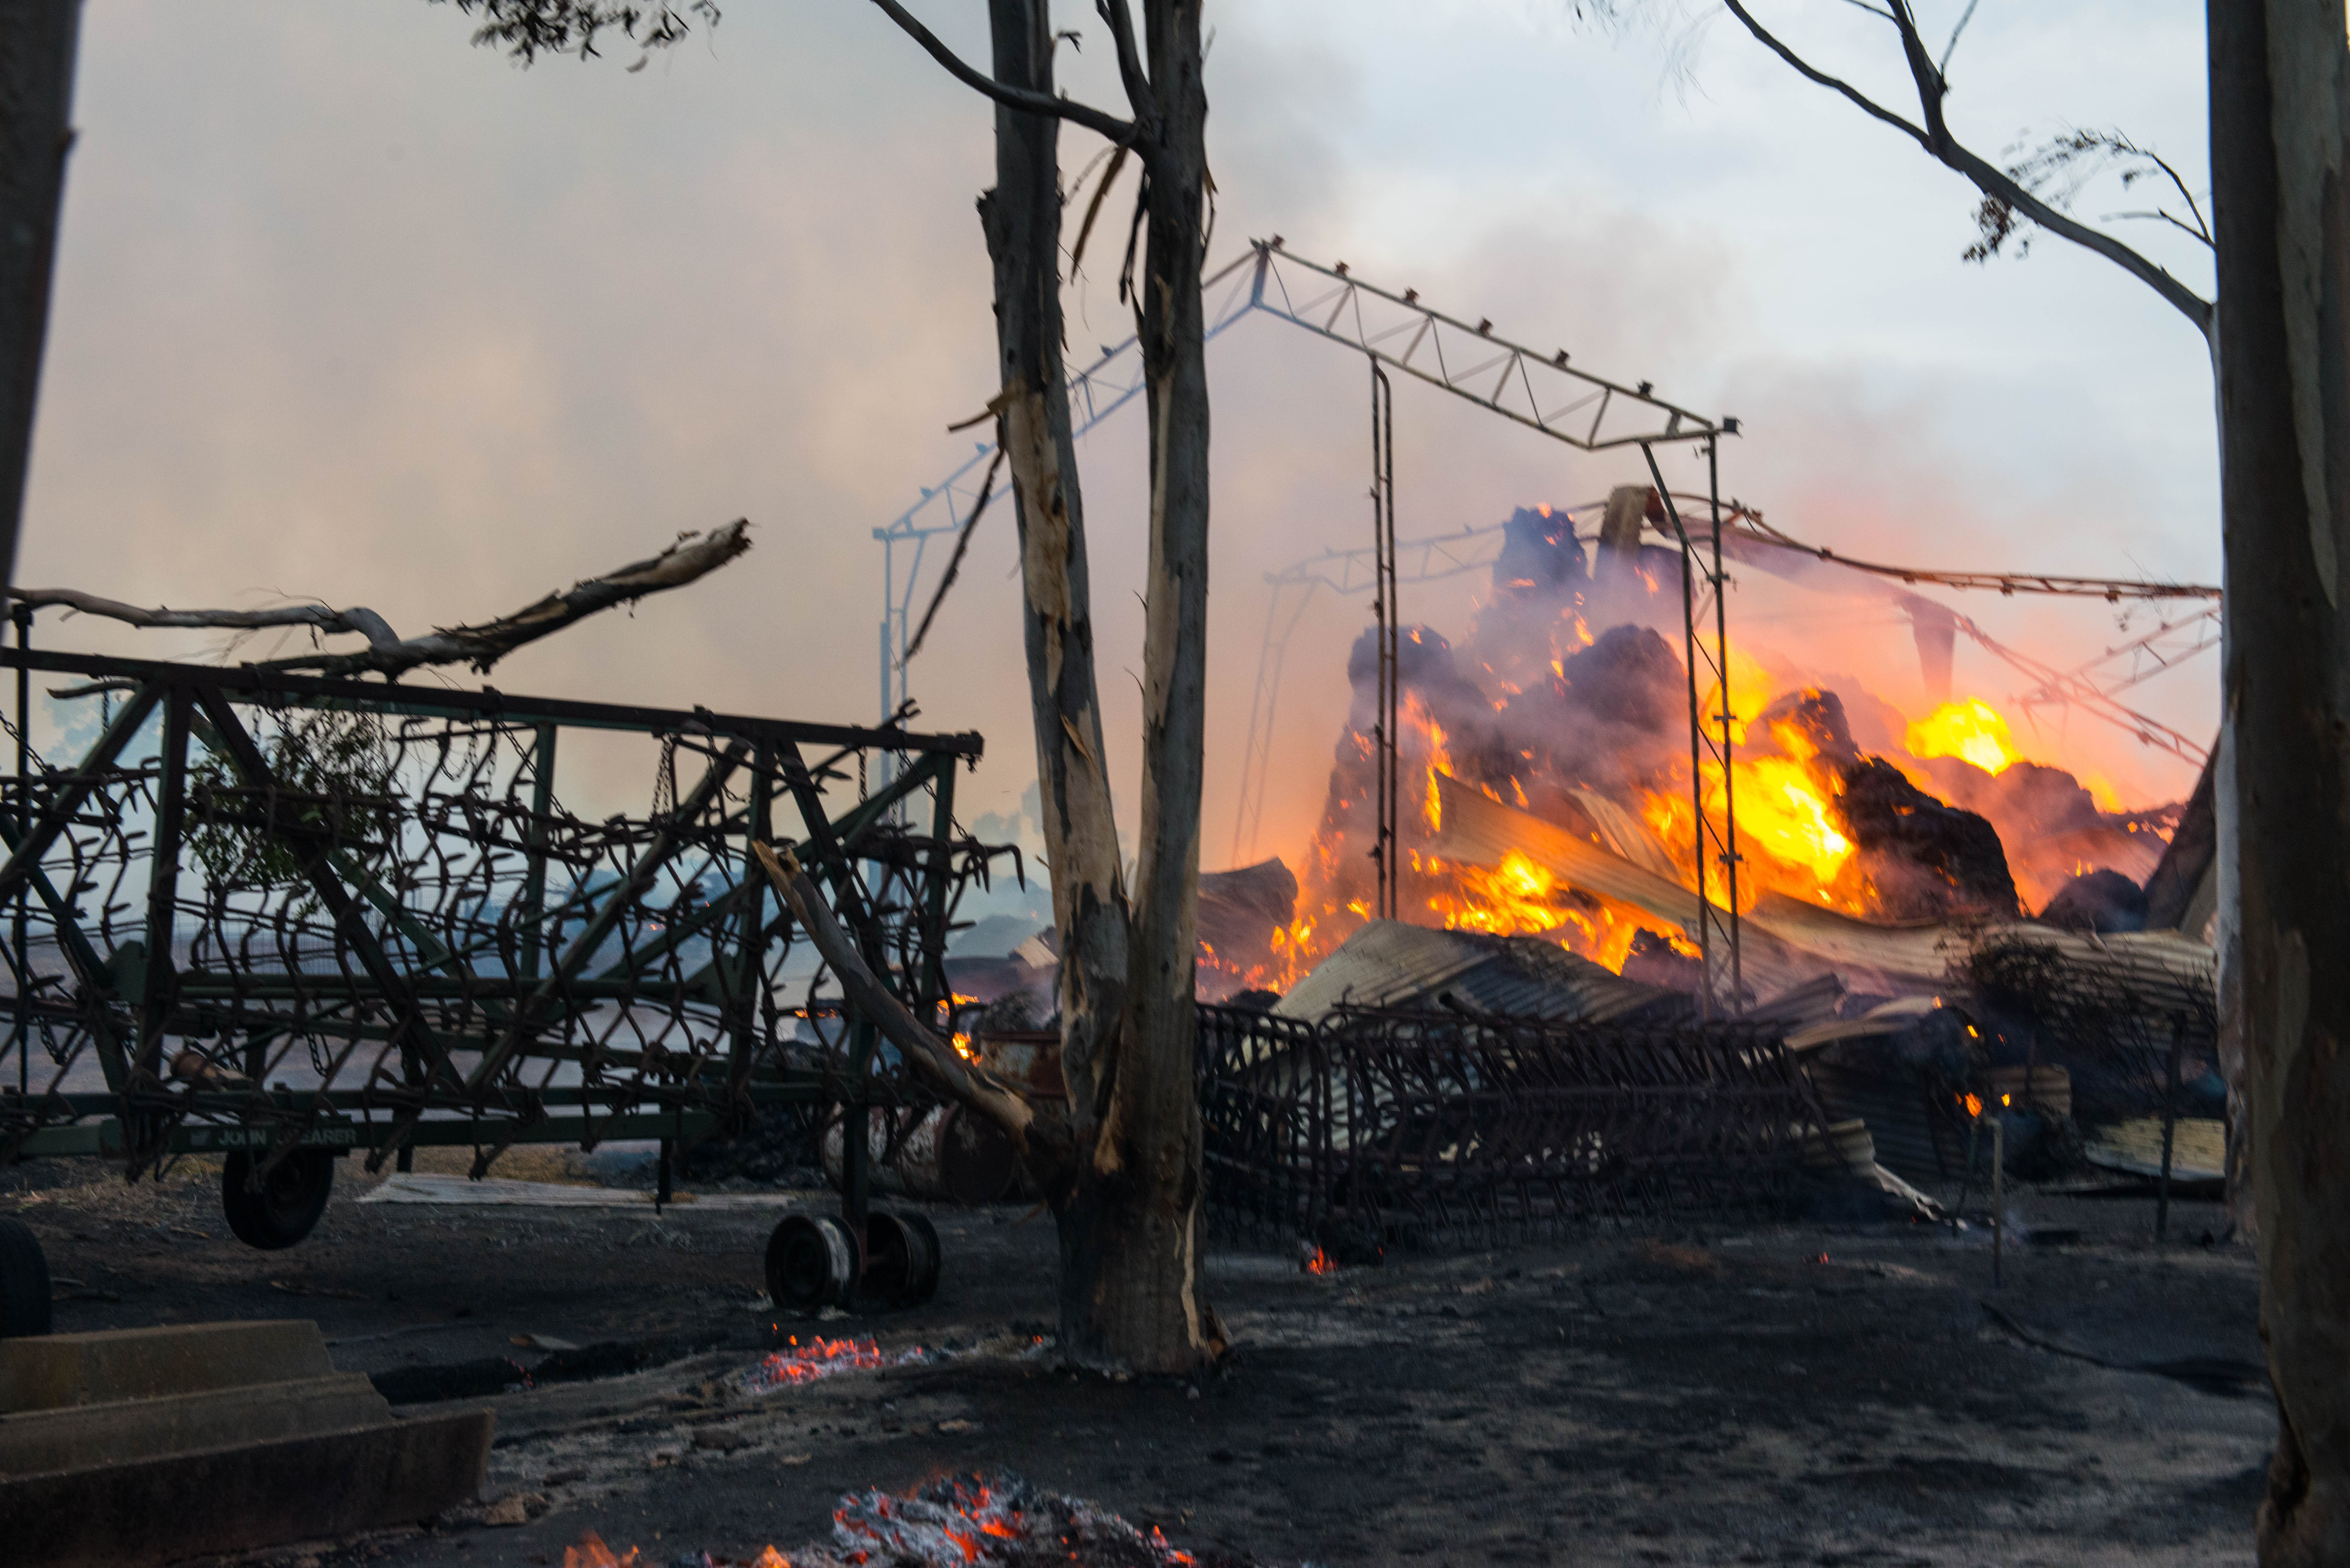 A shed burns at the entrance to Freeling on Wednesday. AAP Image/Brenton Edwards